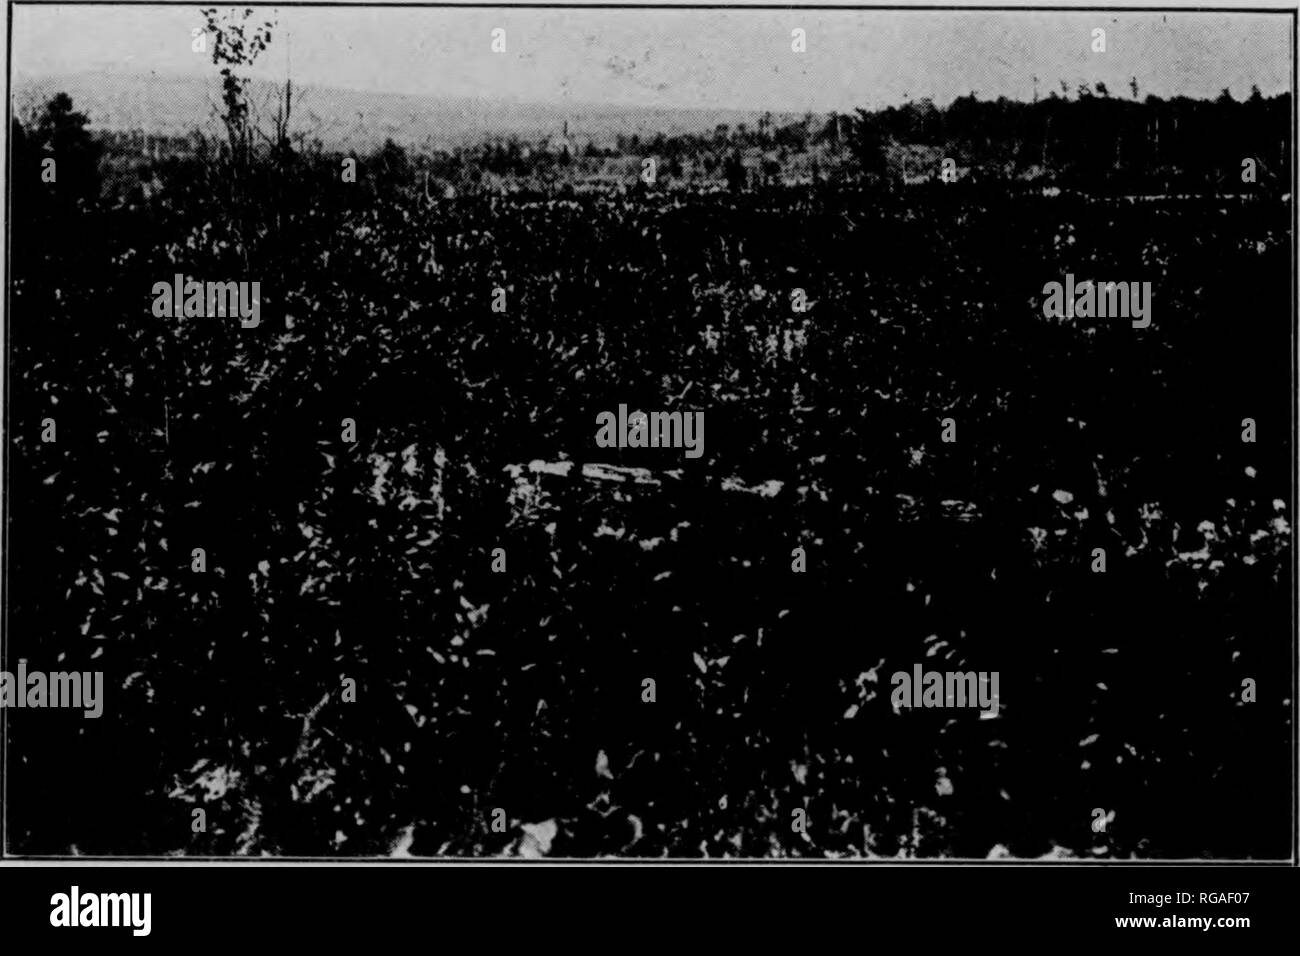 . Bulletin (Pennsylvania Department of Forestry), no. 14-16. Forests and forestry. Photo by Geo. H. Wirt. Fig. 3. AREA OF BRACKEN AND WEEDS. Now waste land. It once produced the best of timber. This land should be planted, iw-^ A:  , ..y-,.f Fig. 4. BRUSH LAND. Reproducing nothing of value. The brush was subsequently burned and the area planted with white pine, Norway spruce, and Scotch pine. 11 Class I. Areas originally farmed but which have proved unsuit- able for agricultural purposes. Land in this class may be found in all parts of Pennsylvania, especially on steep slopes. Class II. Farm  - Stock Image